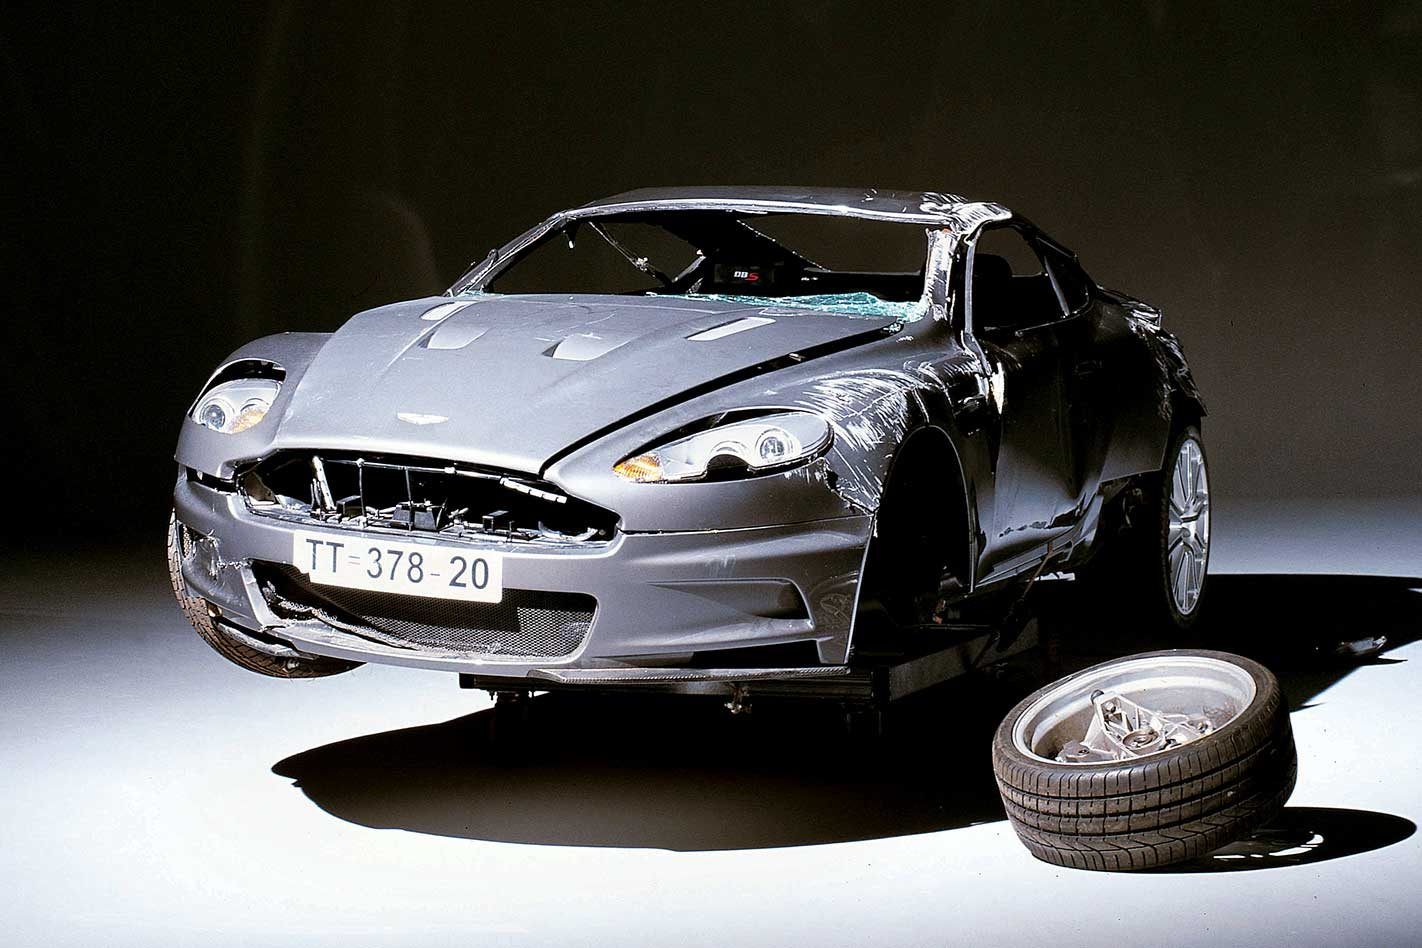 The Aston Martin Dbs Behind The James Bond Casino Royale Stunt